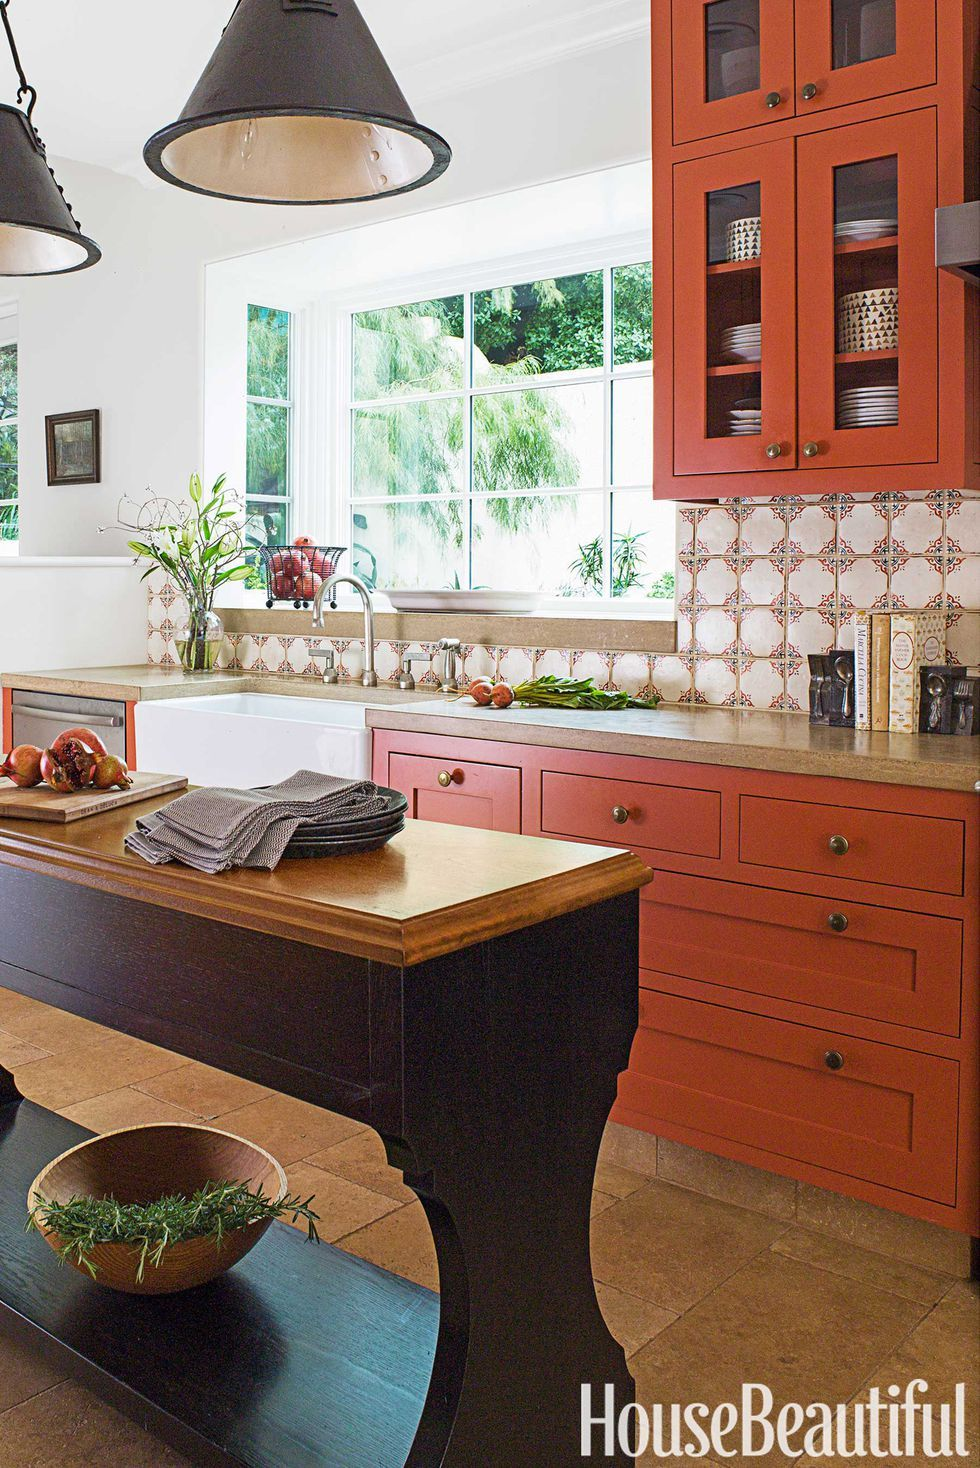 Best These 15 Color Trends Are Dominating 2018 Kitchen Colors 400 x 300